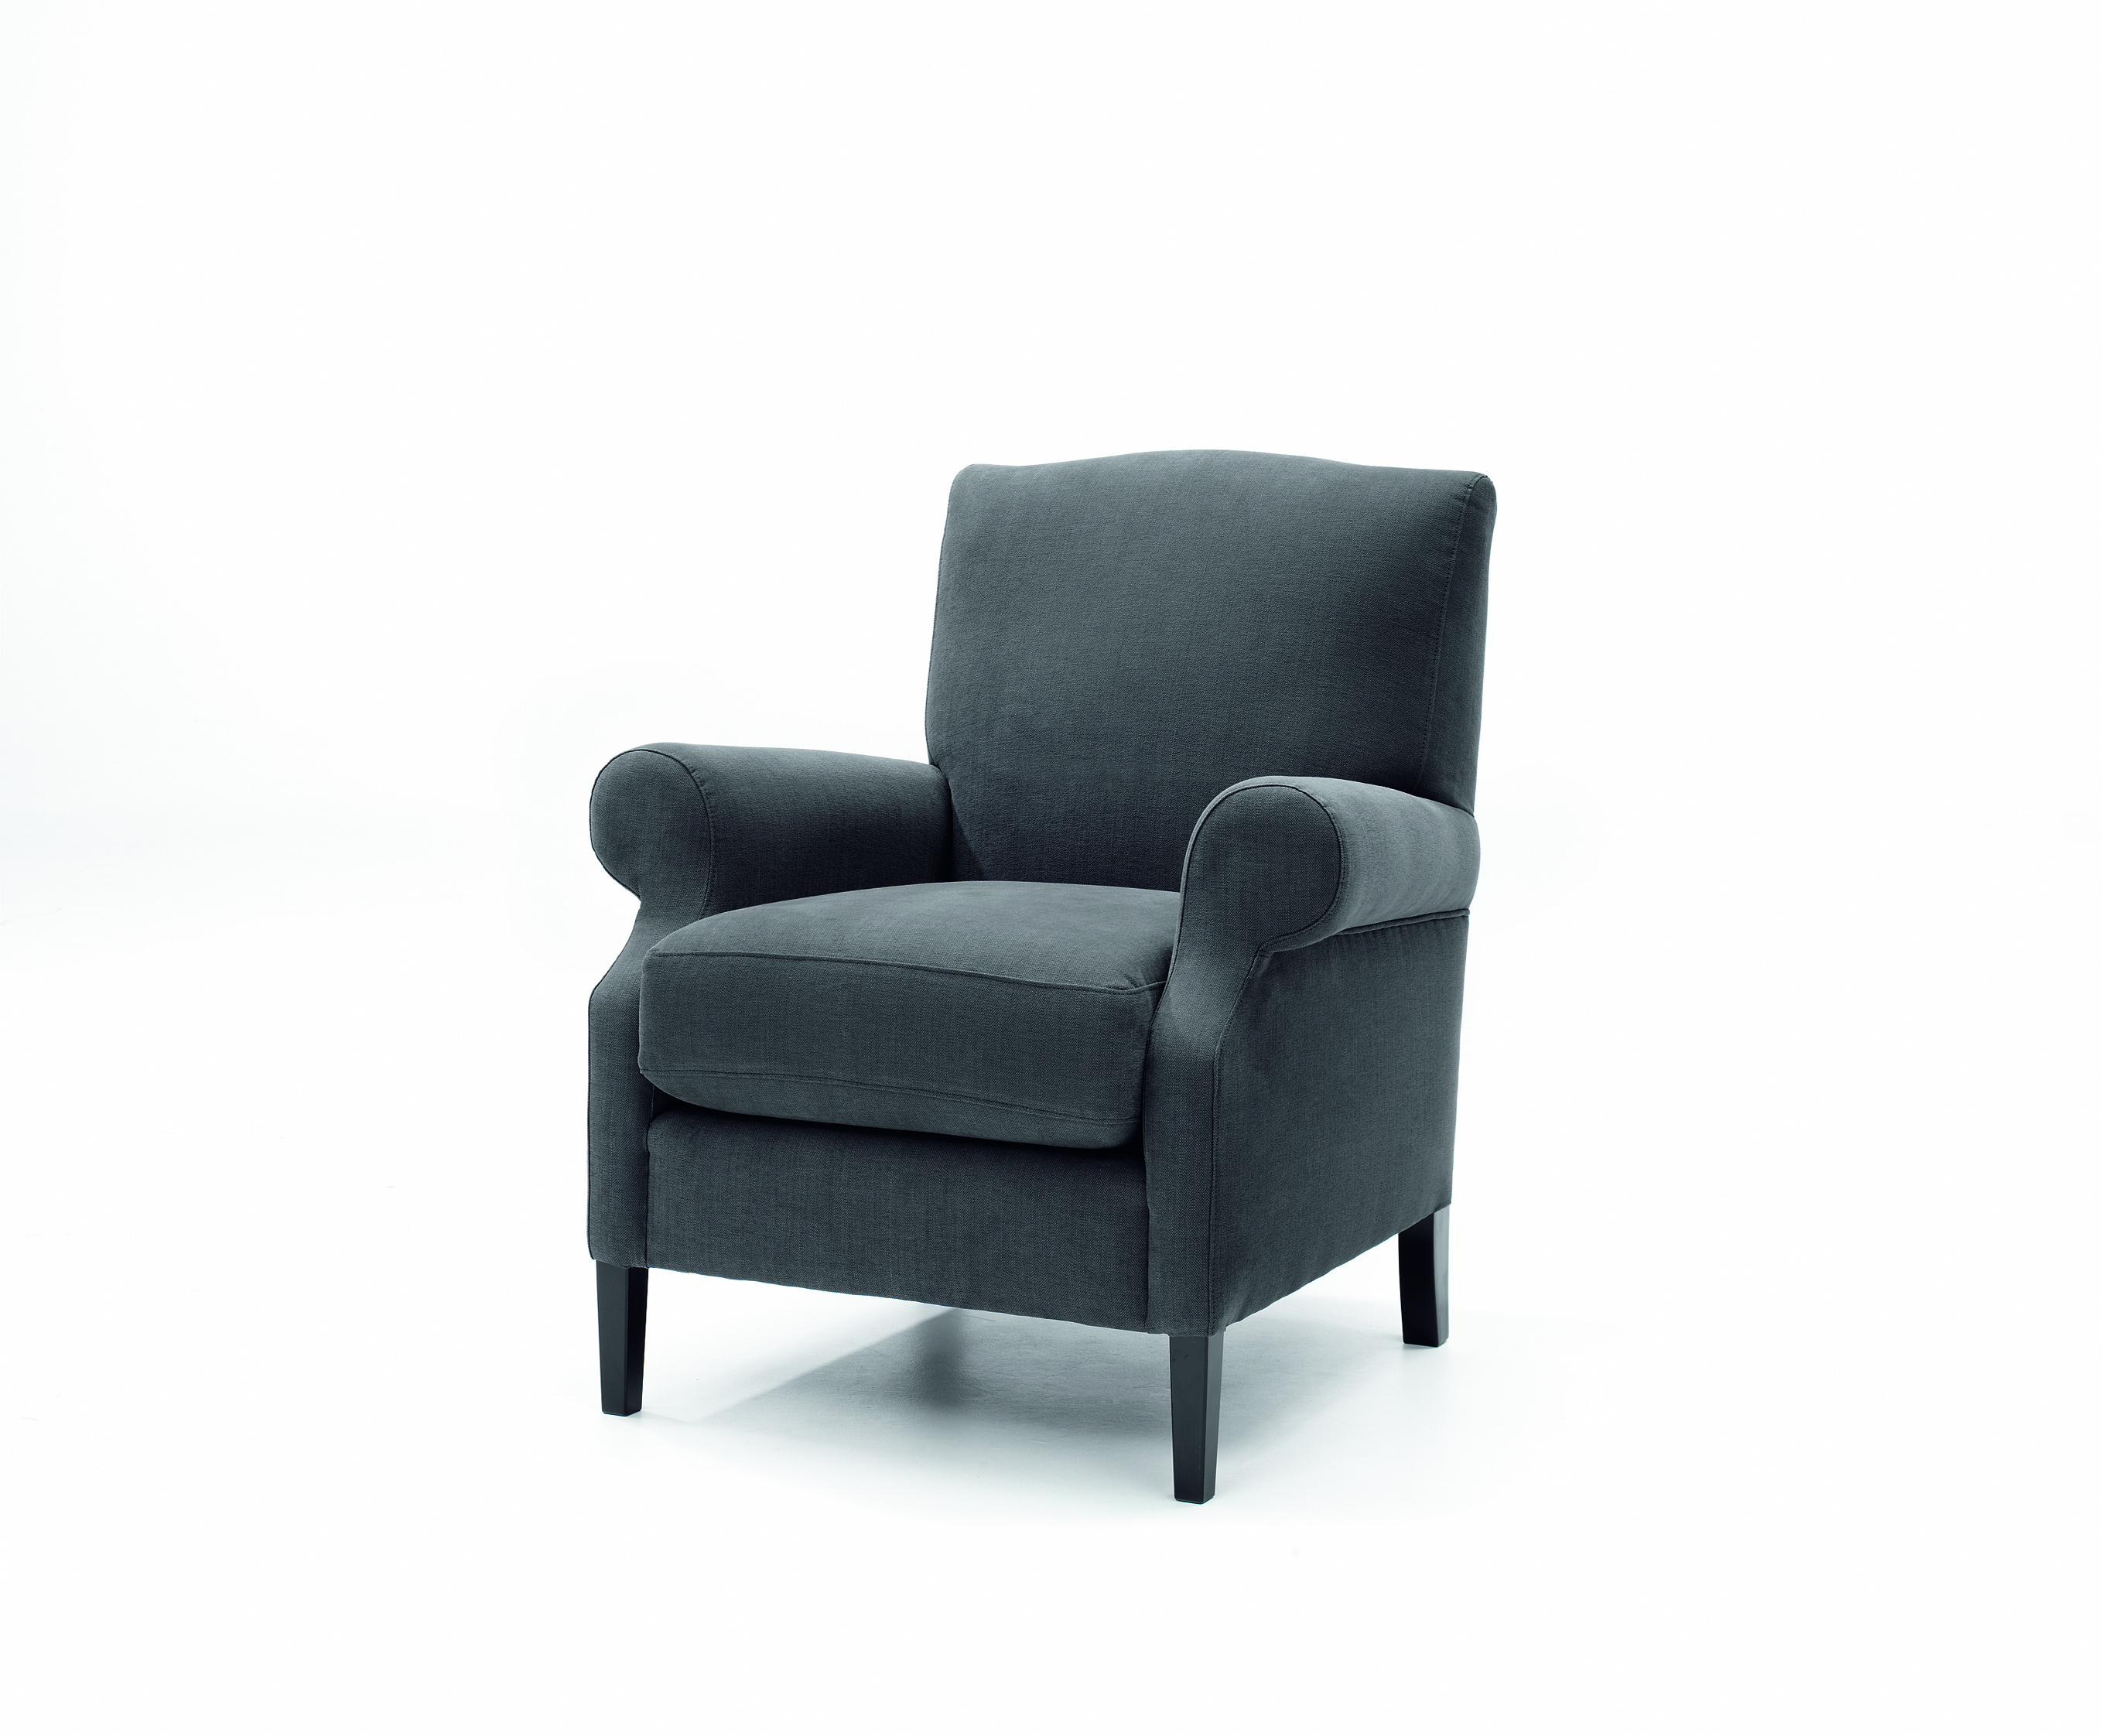 cushy armchair case Buy cushy cloud memory foam seat cushion - ergonomic chair pad - provides instant pain relief  it works great in all types of chairs it comes with a carrying case and an additional cover read more published 1 year ago clg 40 out of 5 stars good as a booster seat.